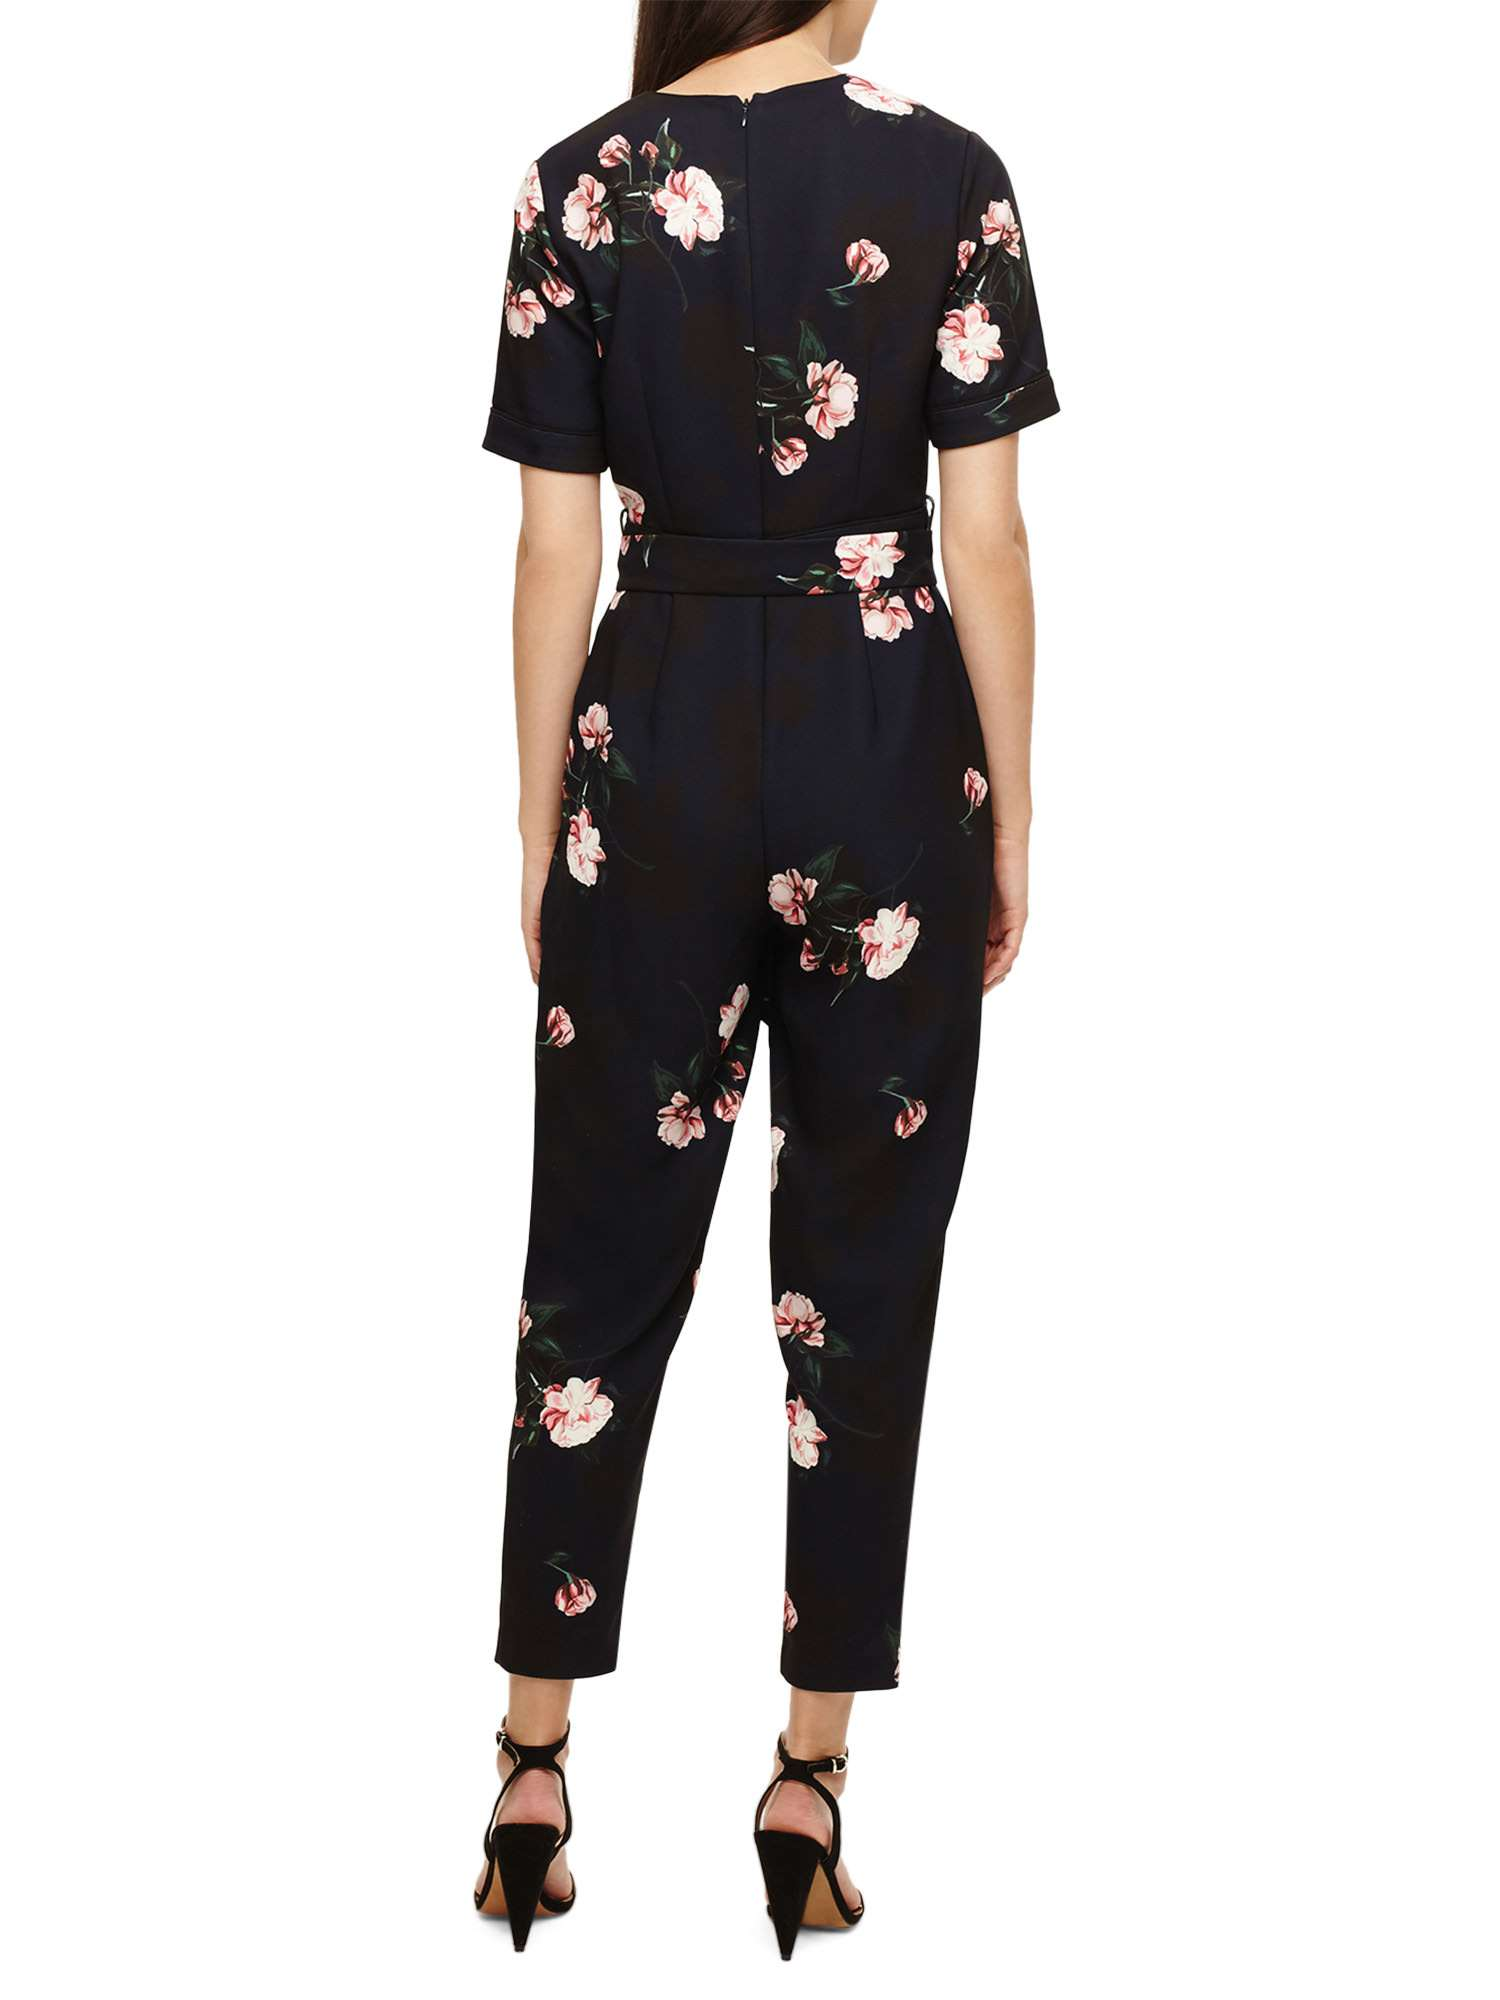 Jumpsuit Harriet Phase Harriet Jumpsuit Floral Eight Eight Phase Phase Floral Cdq1cyg